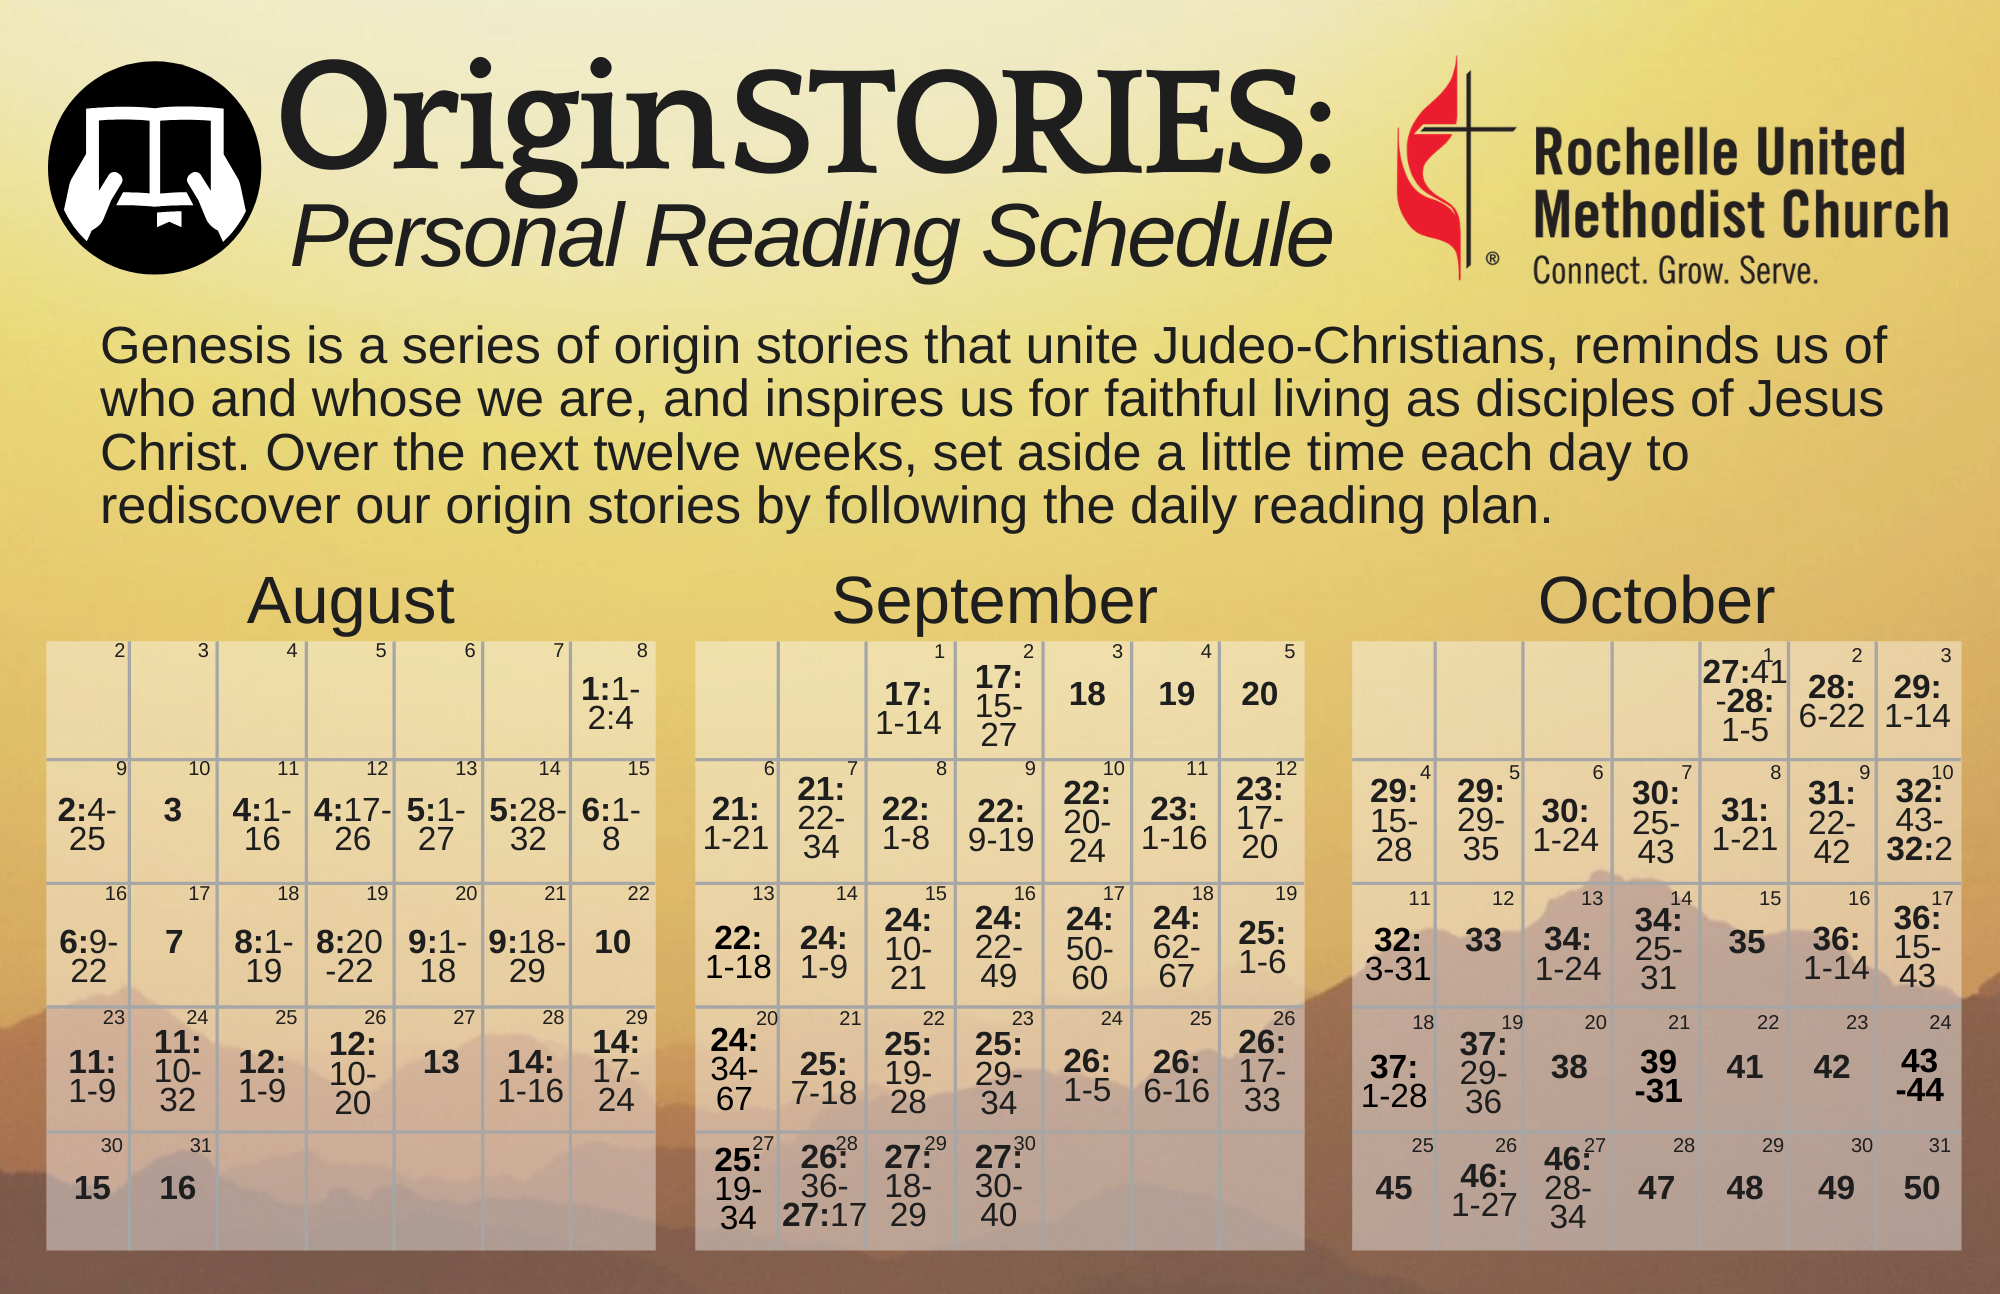 Origin Stories Personal Reading Plan